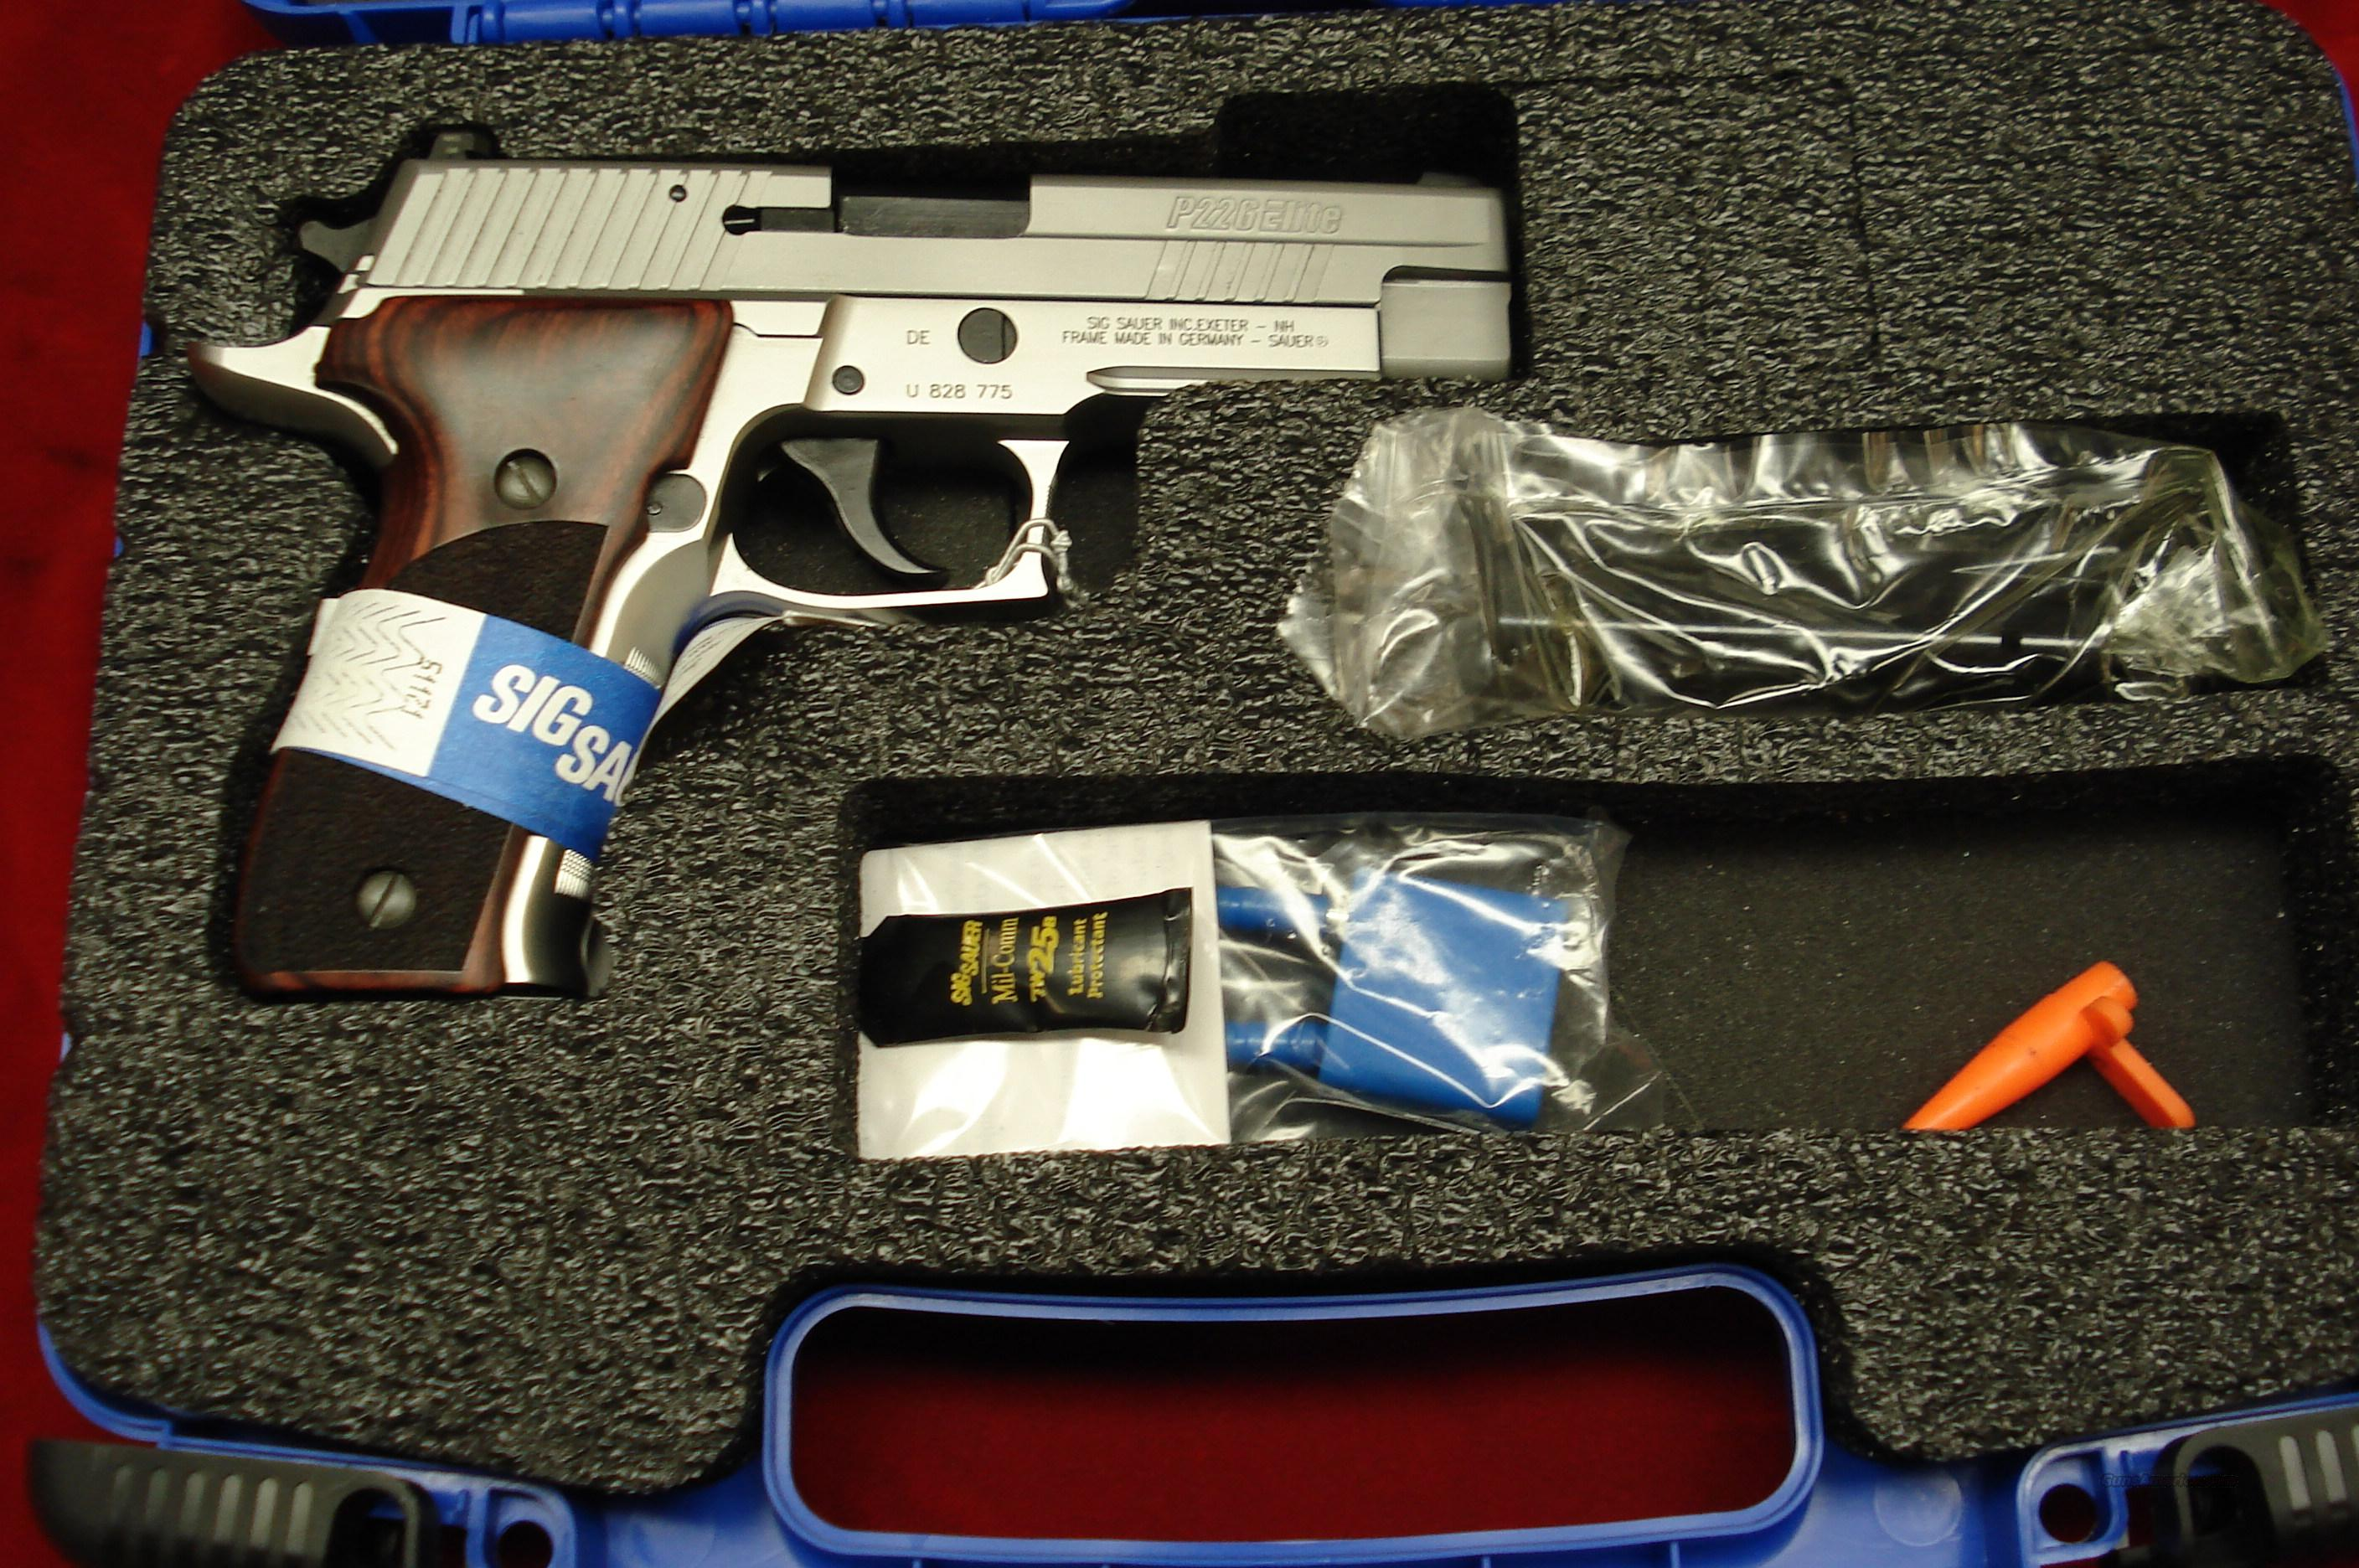 SIG SAUER P226 ELITE 40CAL STAINLESS  WITH NIGHT SIGHTS NEW  Guns > Pistols > Sig - Sauer/Sigarms Pistols > P226